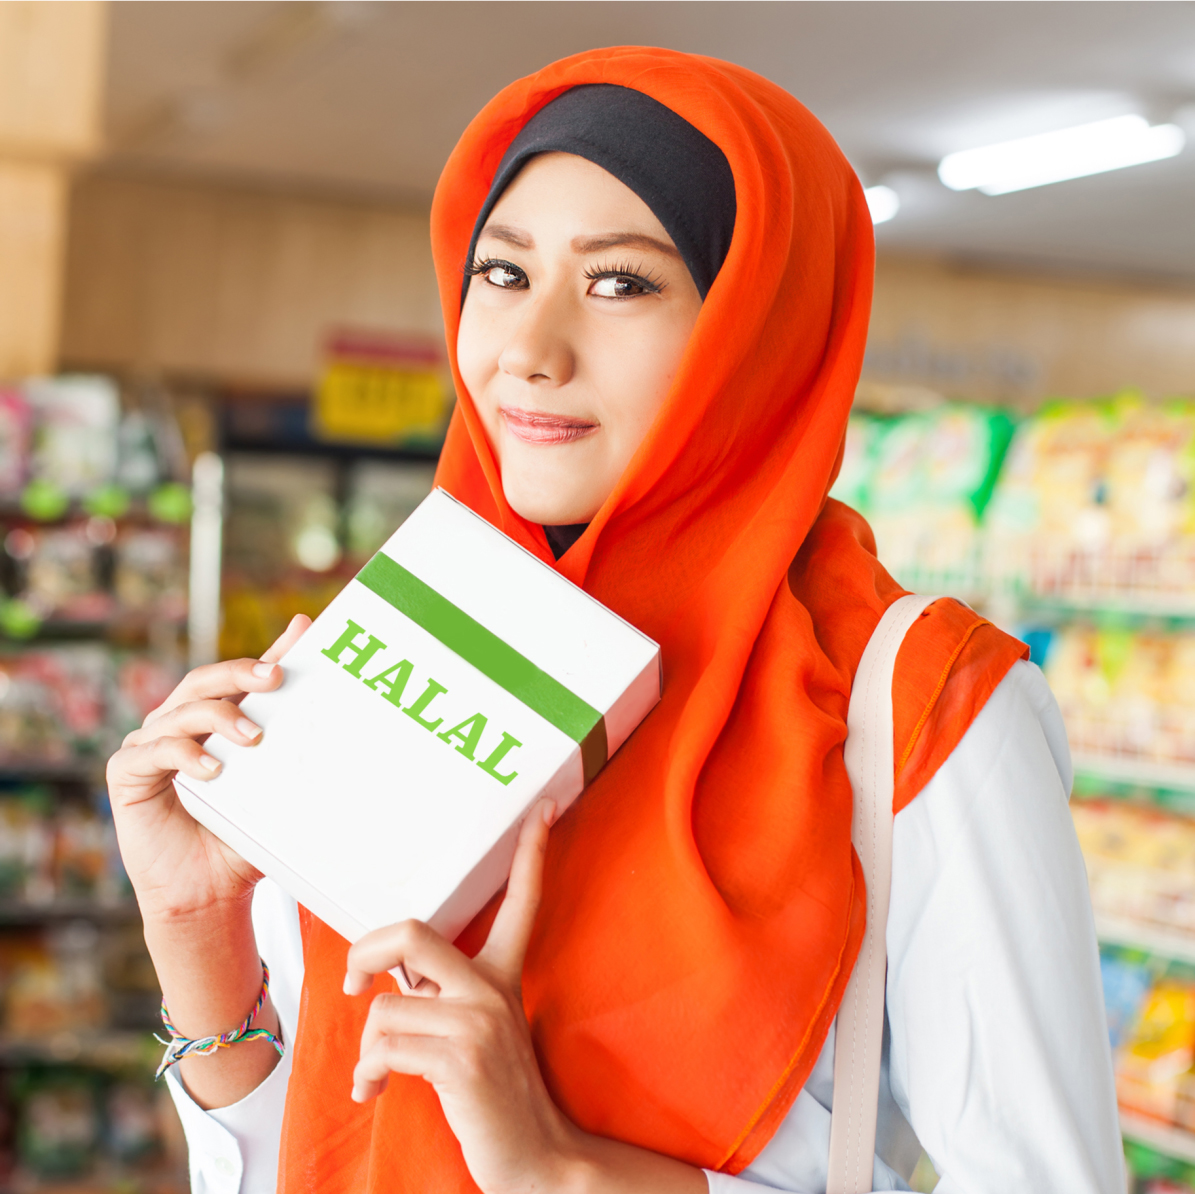 Muslim woman shopping for halal groceries